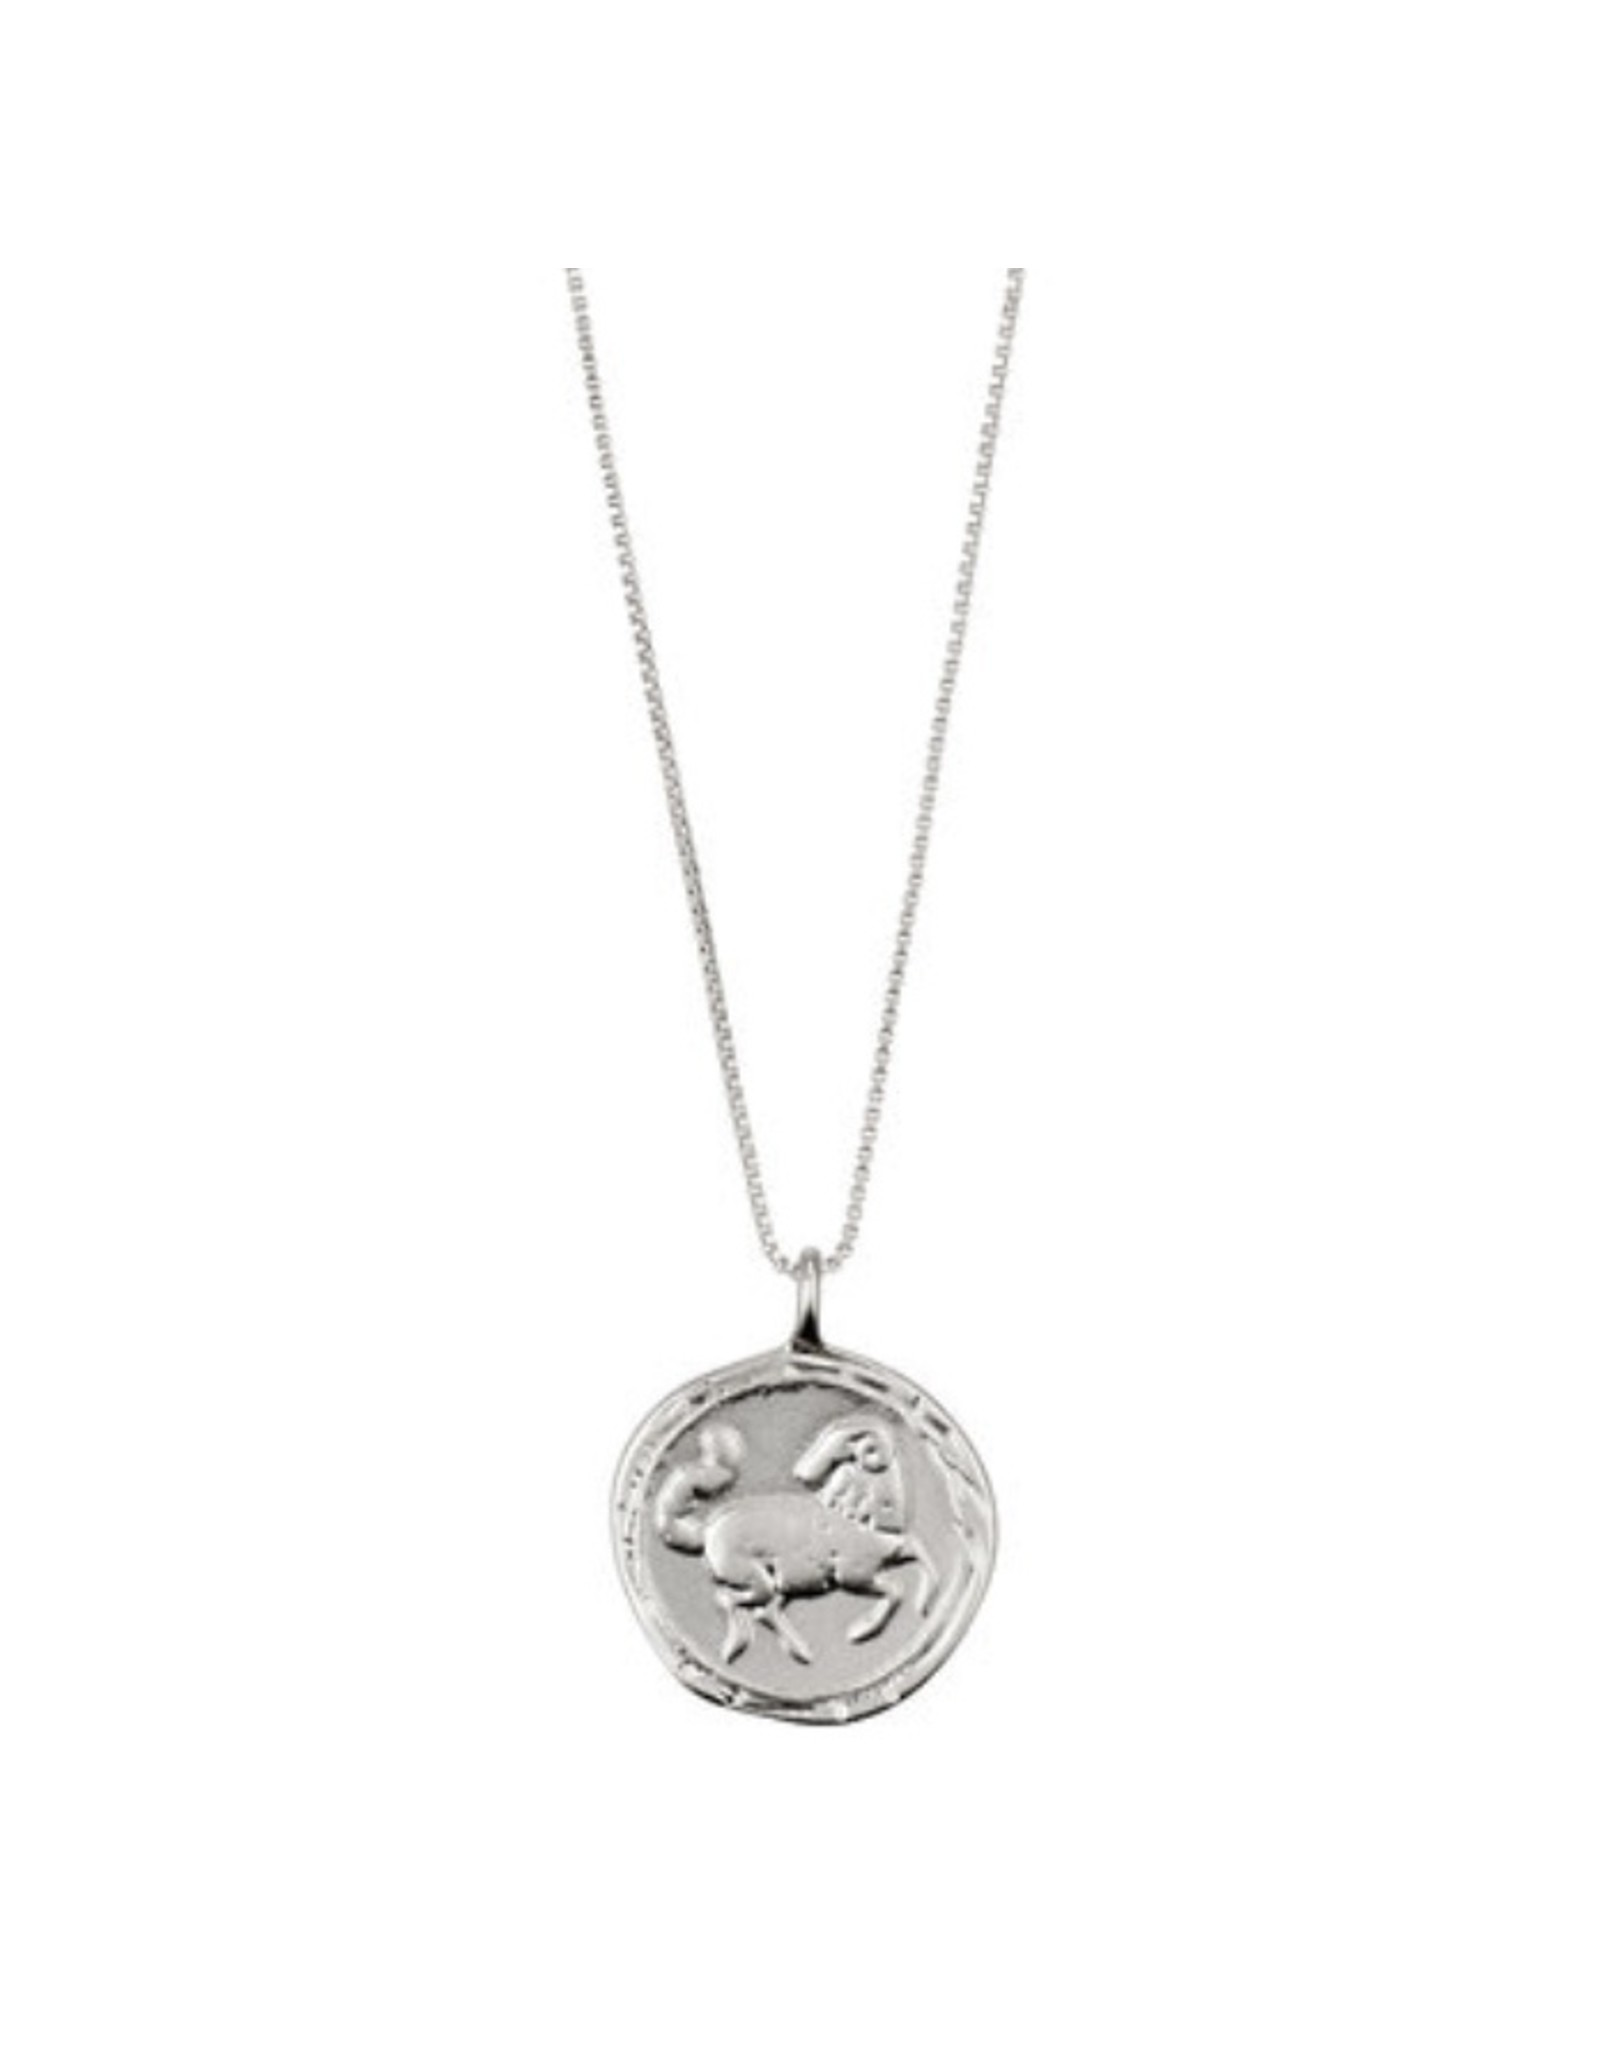 Pilgrim Necklace Silver Plated, Aries